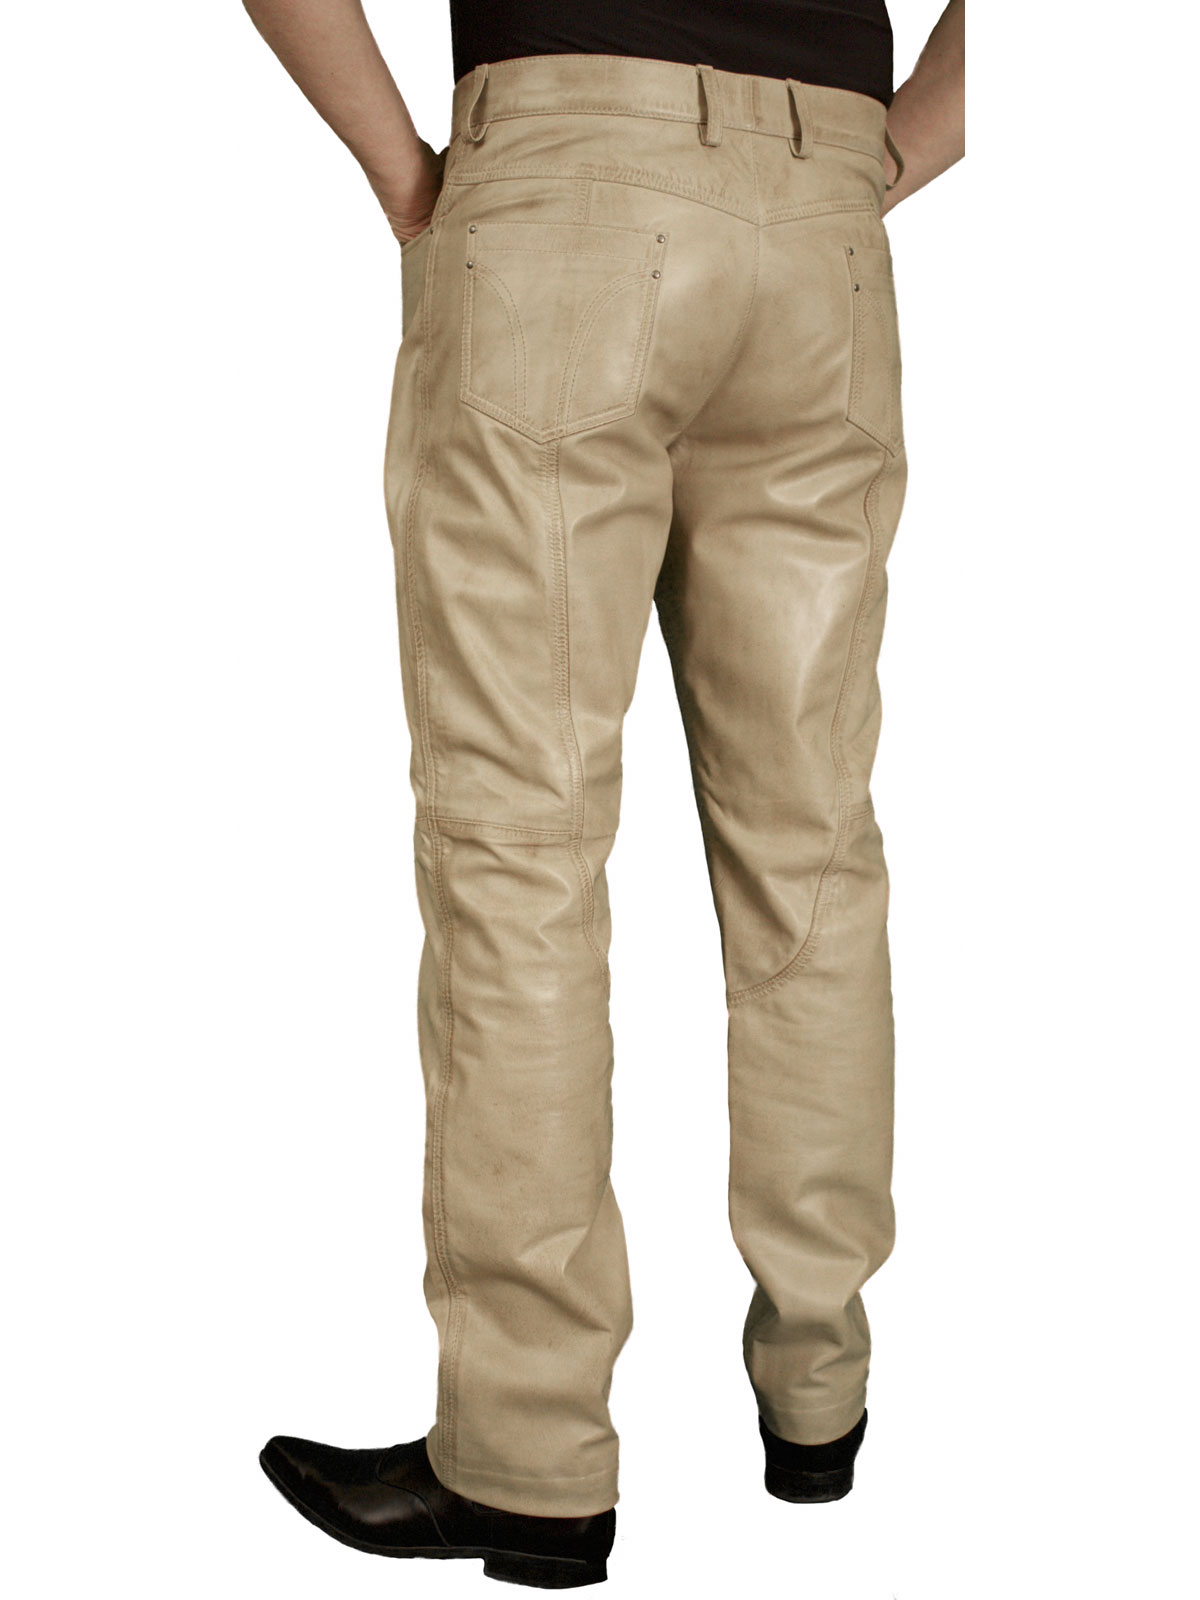 Mens Beige Smart Leather Trousers Jeans